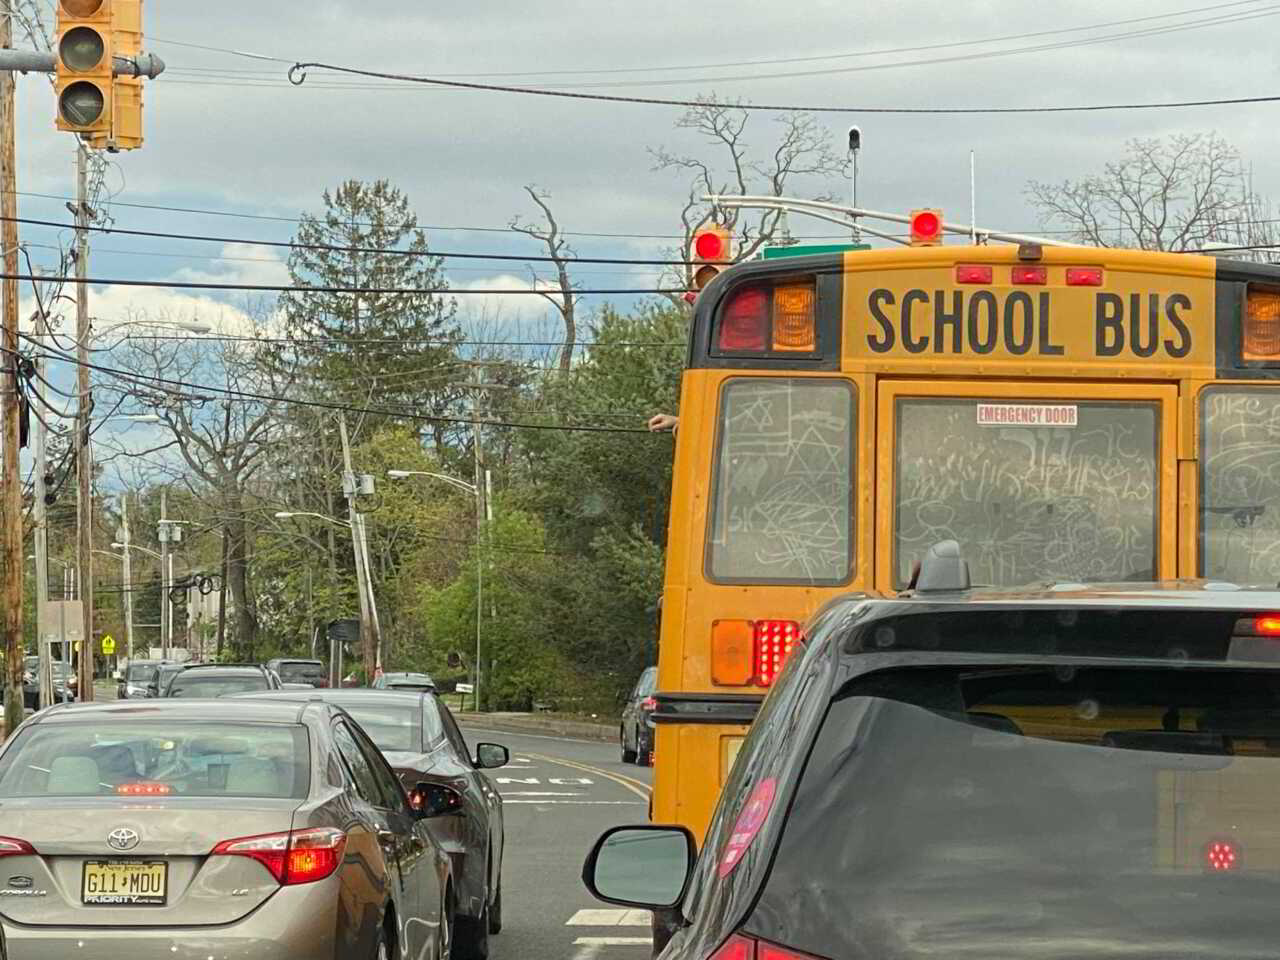 Picture of kids pouring liquid outside the windows of a school bus onto other vehicles. with markings all over the rear windows of the schoolbus.